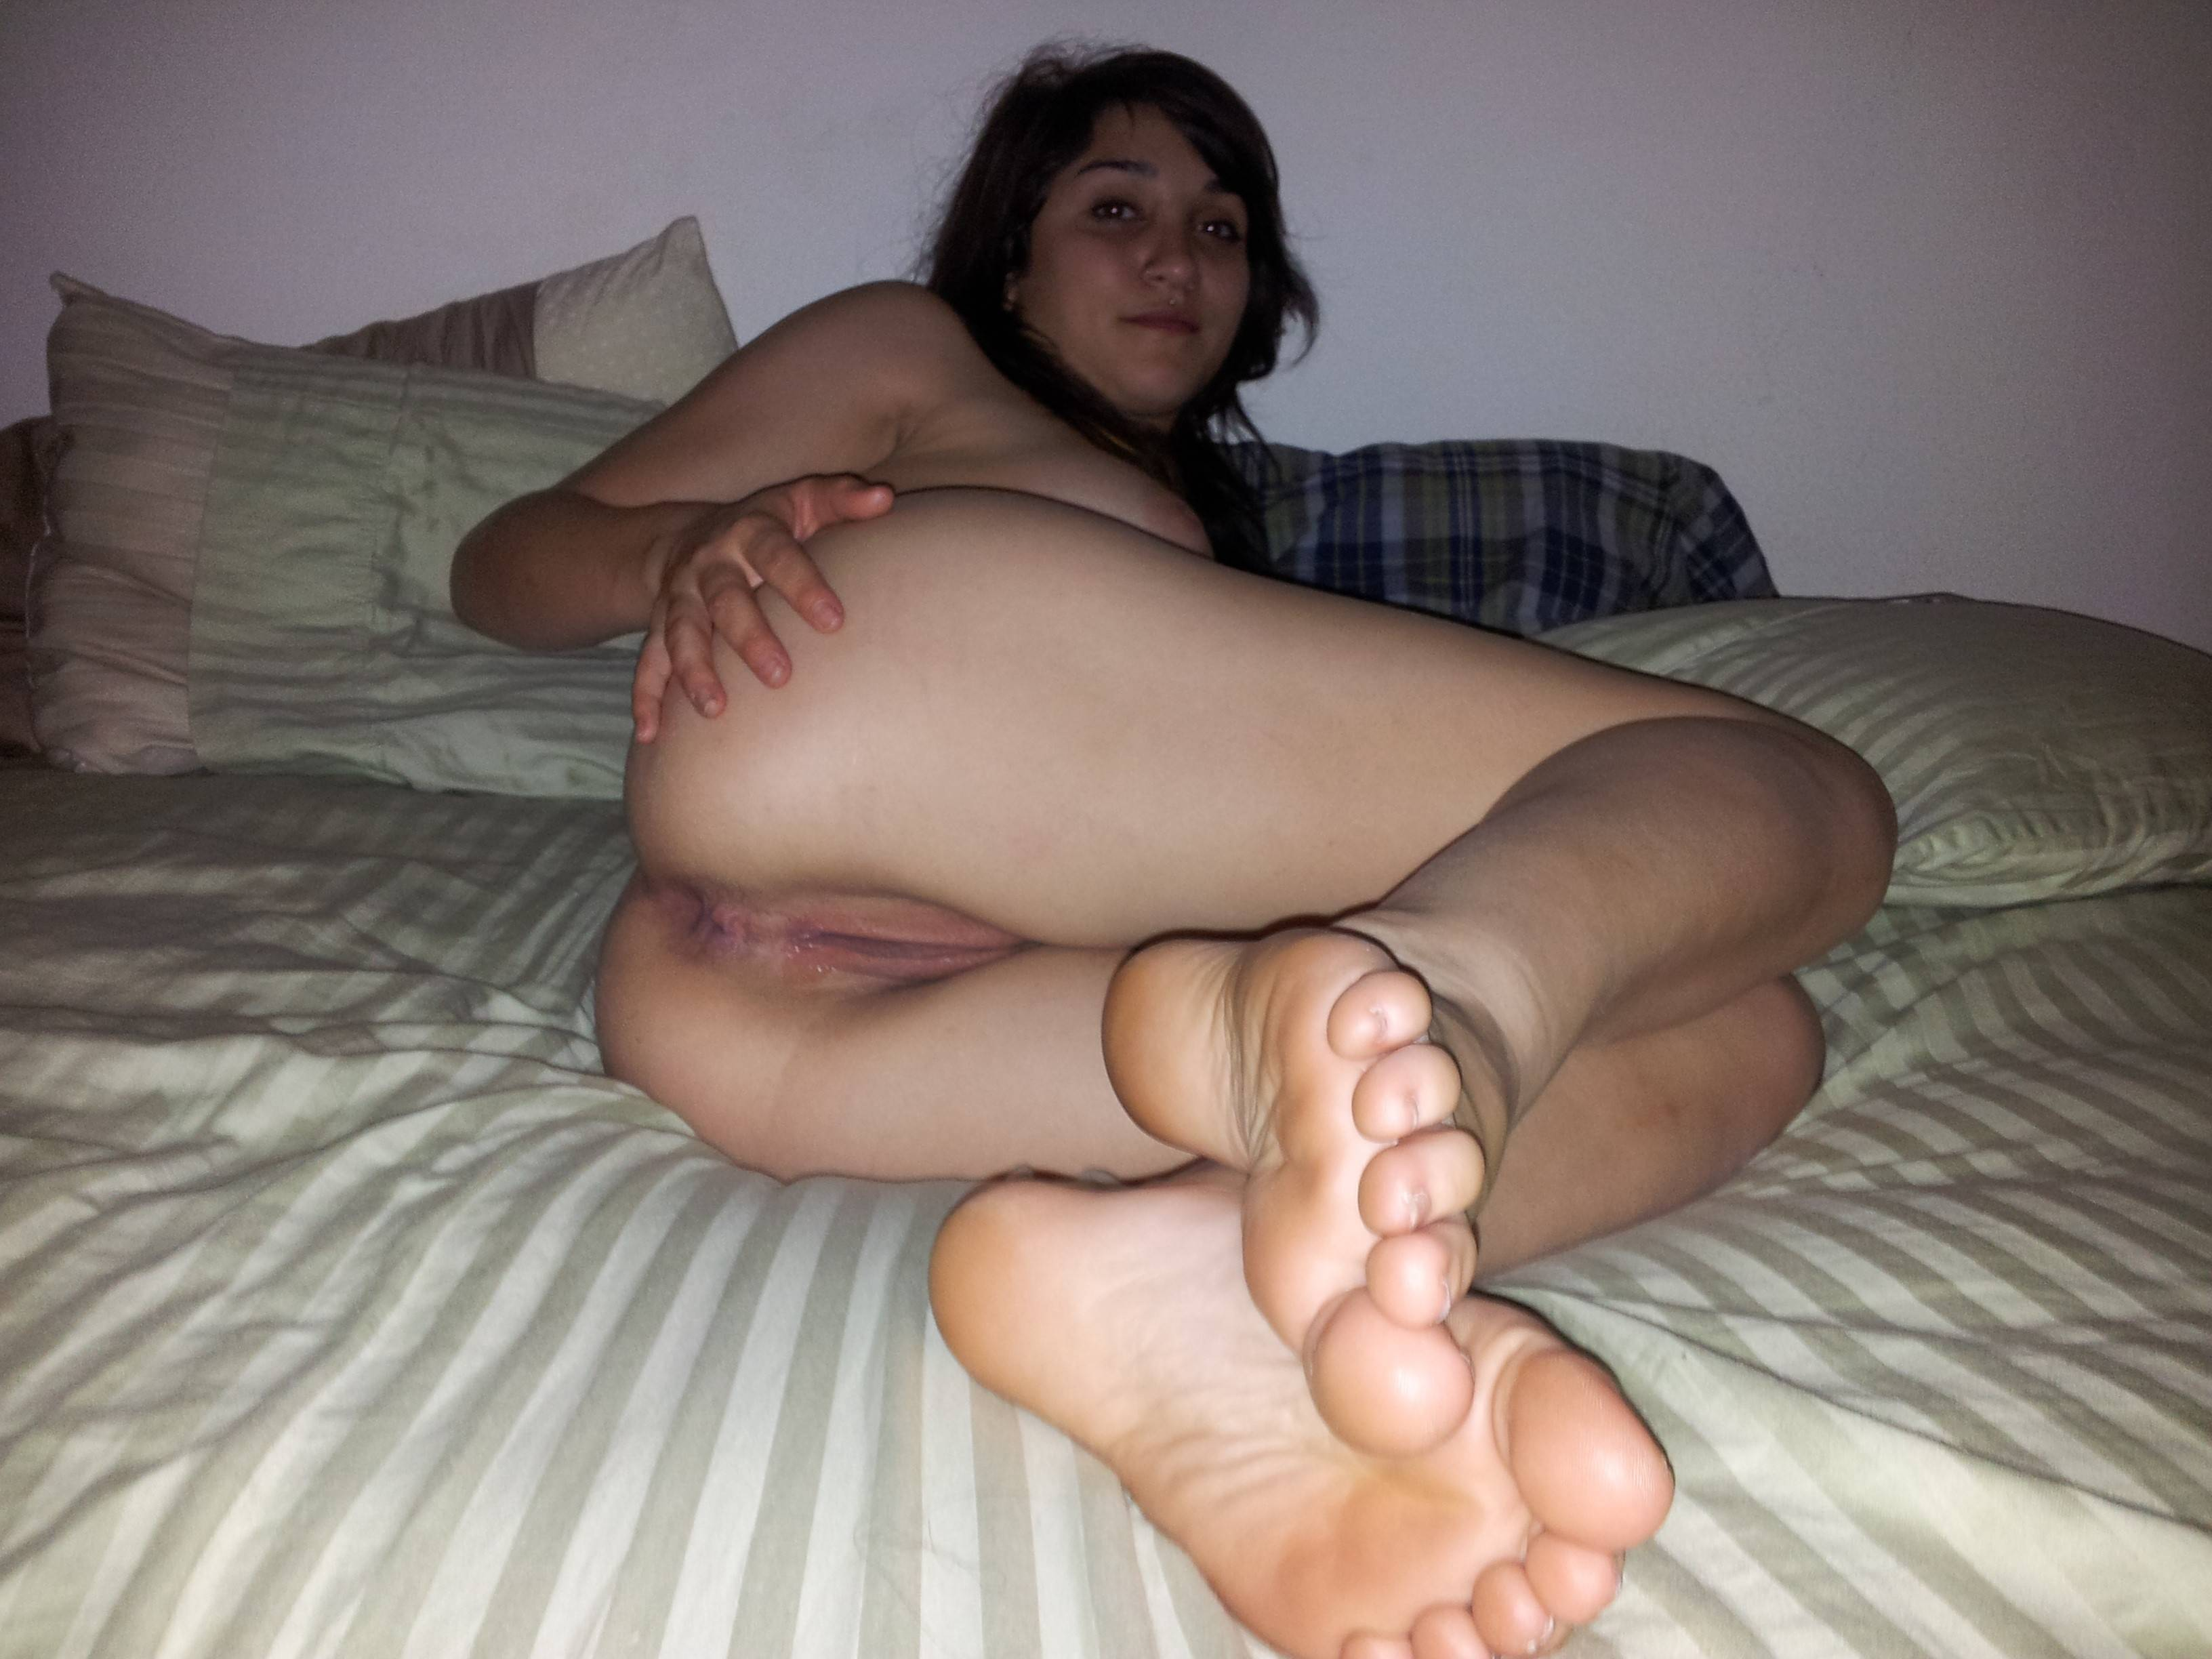 Online meet up footjob - 2 part 9